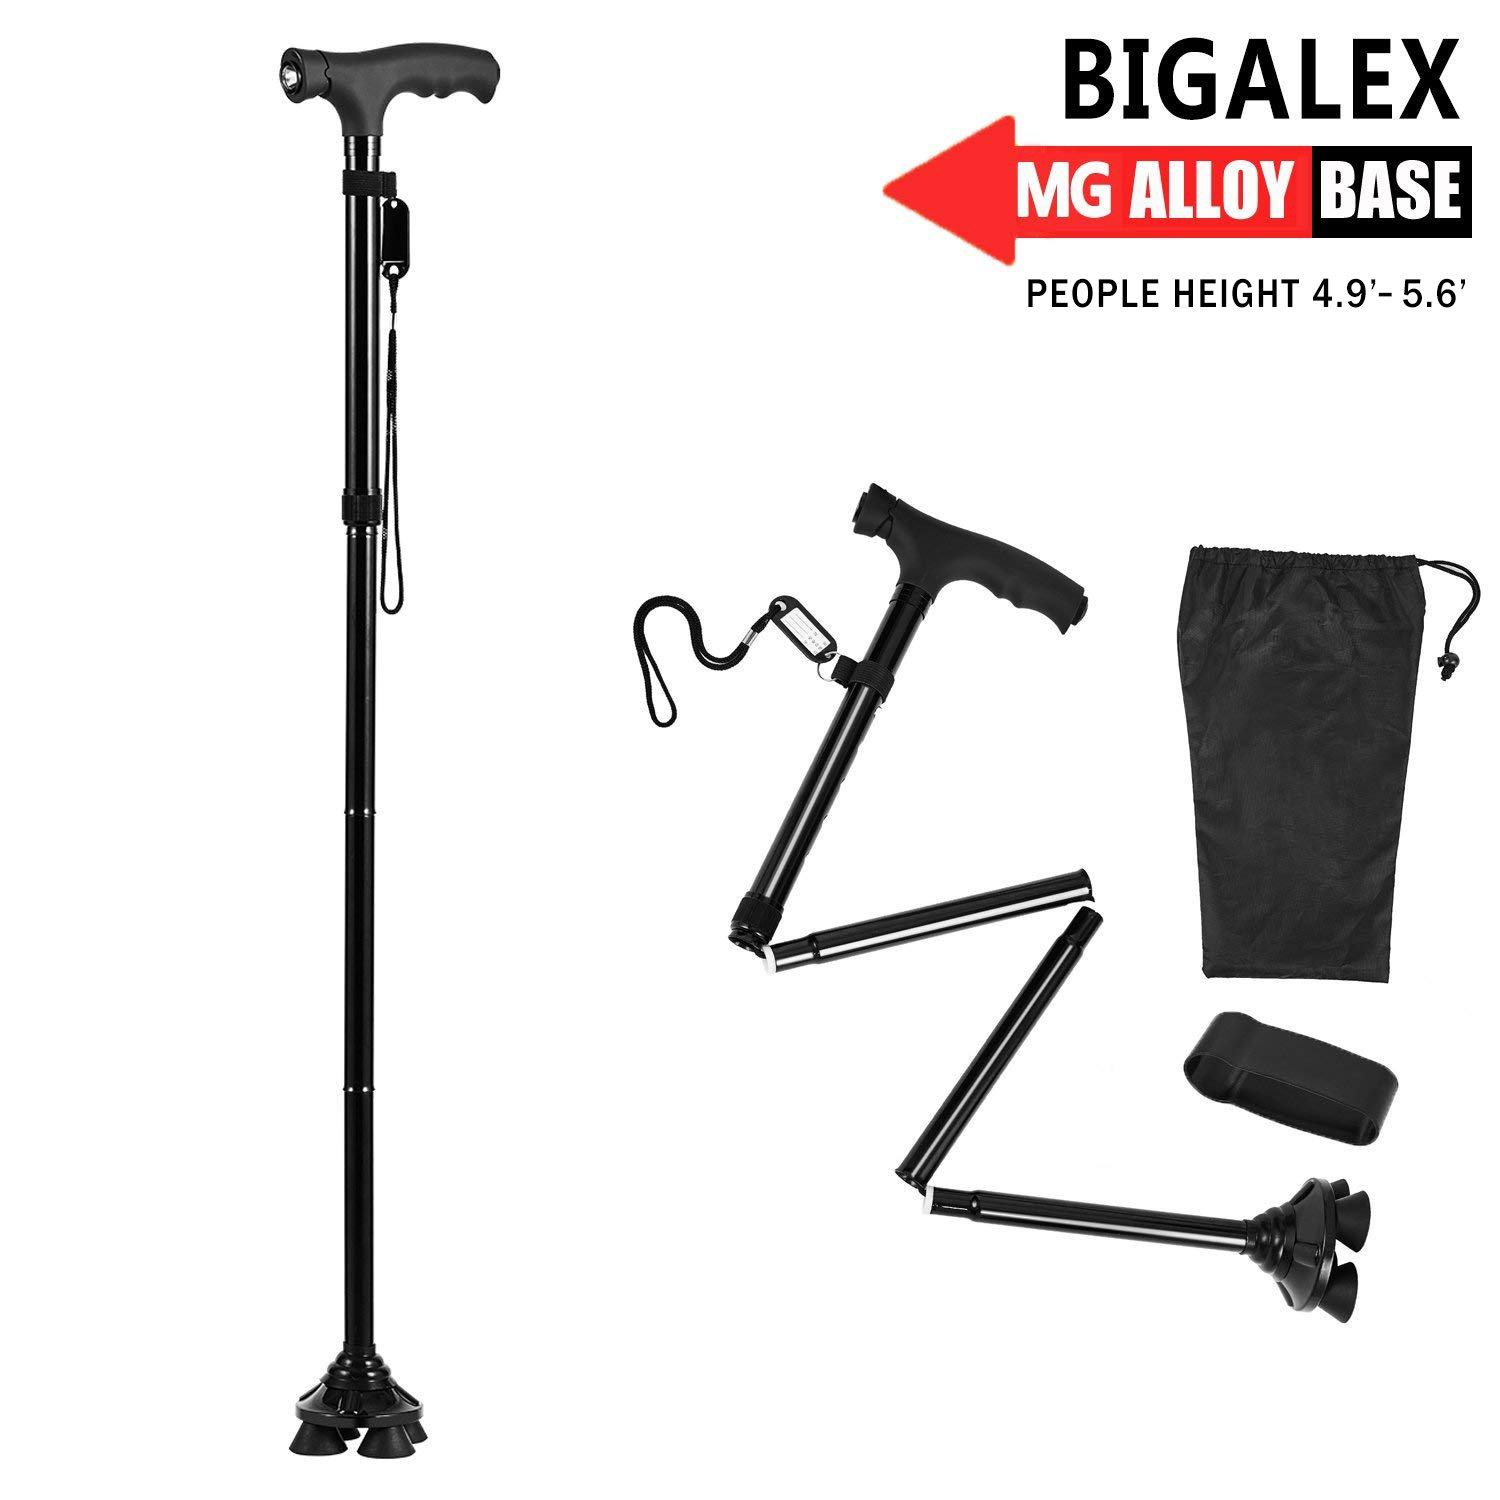 BigAlex Folding Walking Cane with LED Light,Pivoting Quad Base,Adjustable Walking Stick with Carrying Bag for Man/Woman